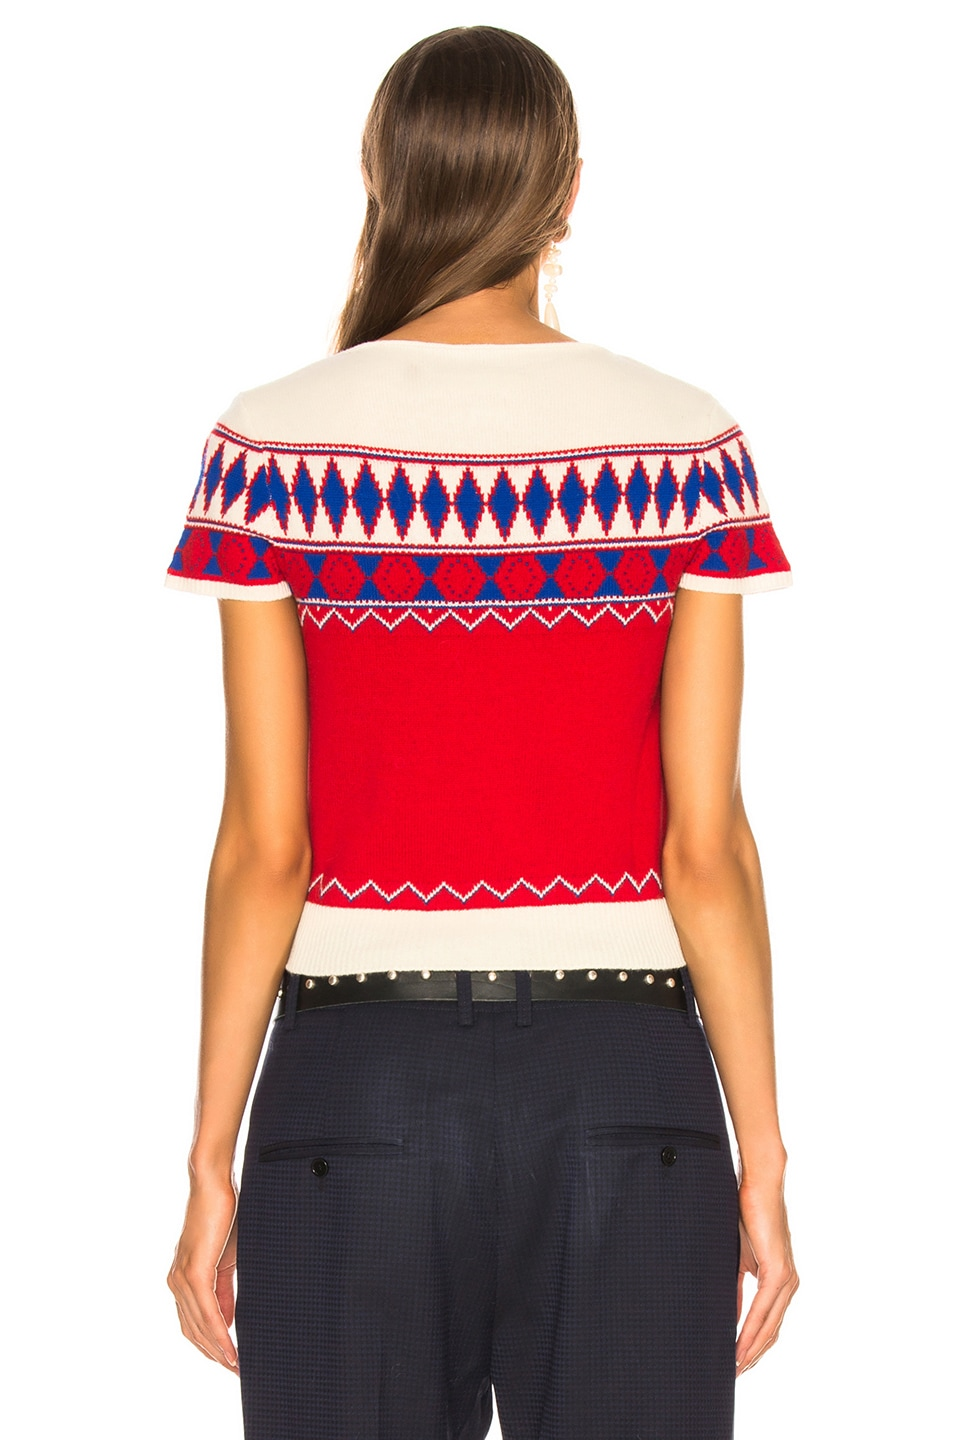 Image 3 of Maison Margiela Short Sleeve Cropped Sweater in Jacquard Red